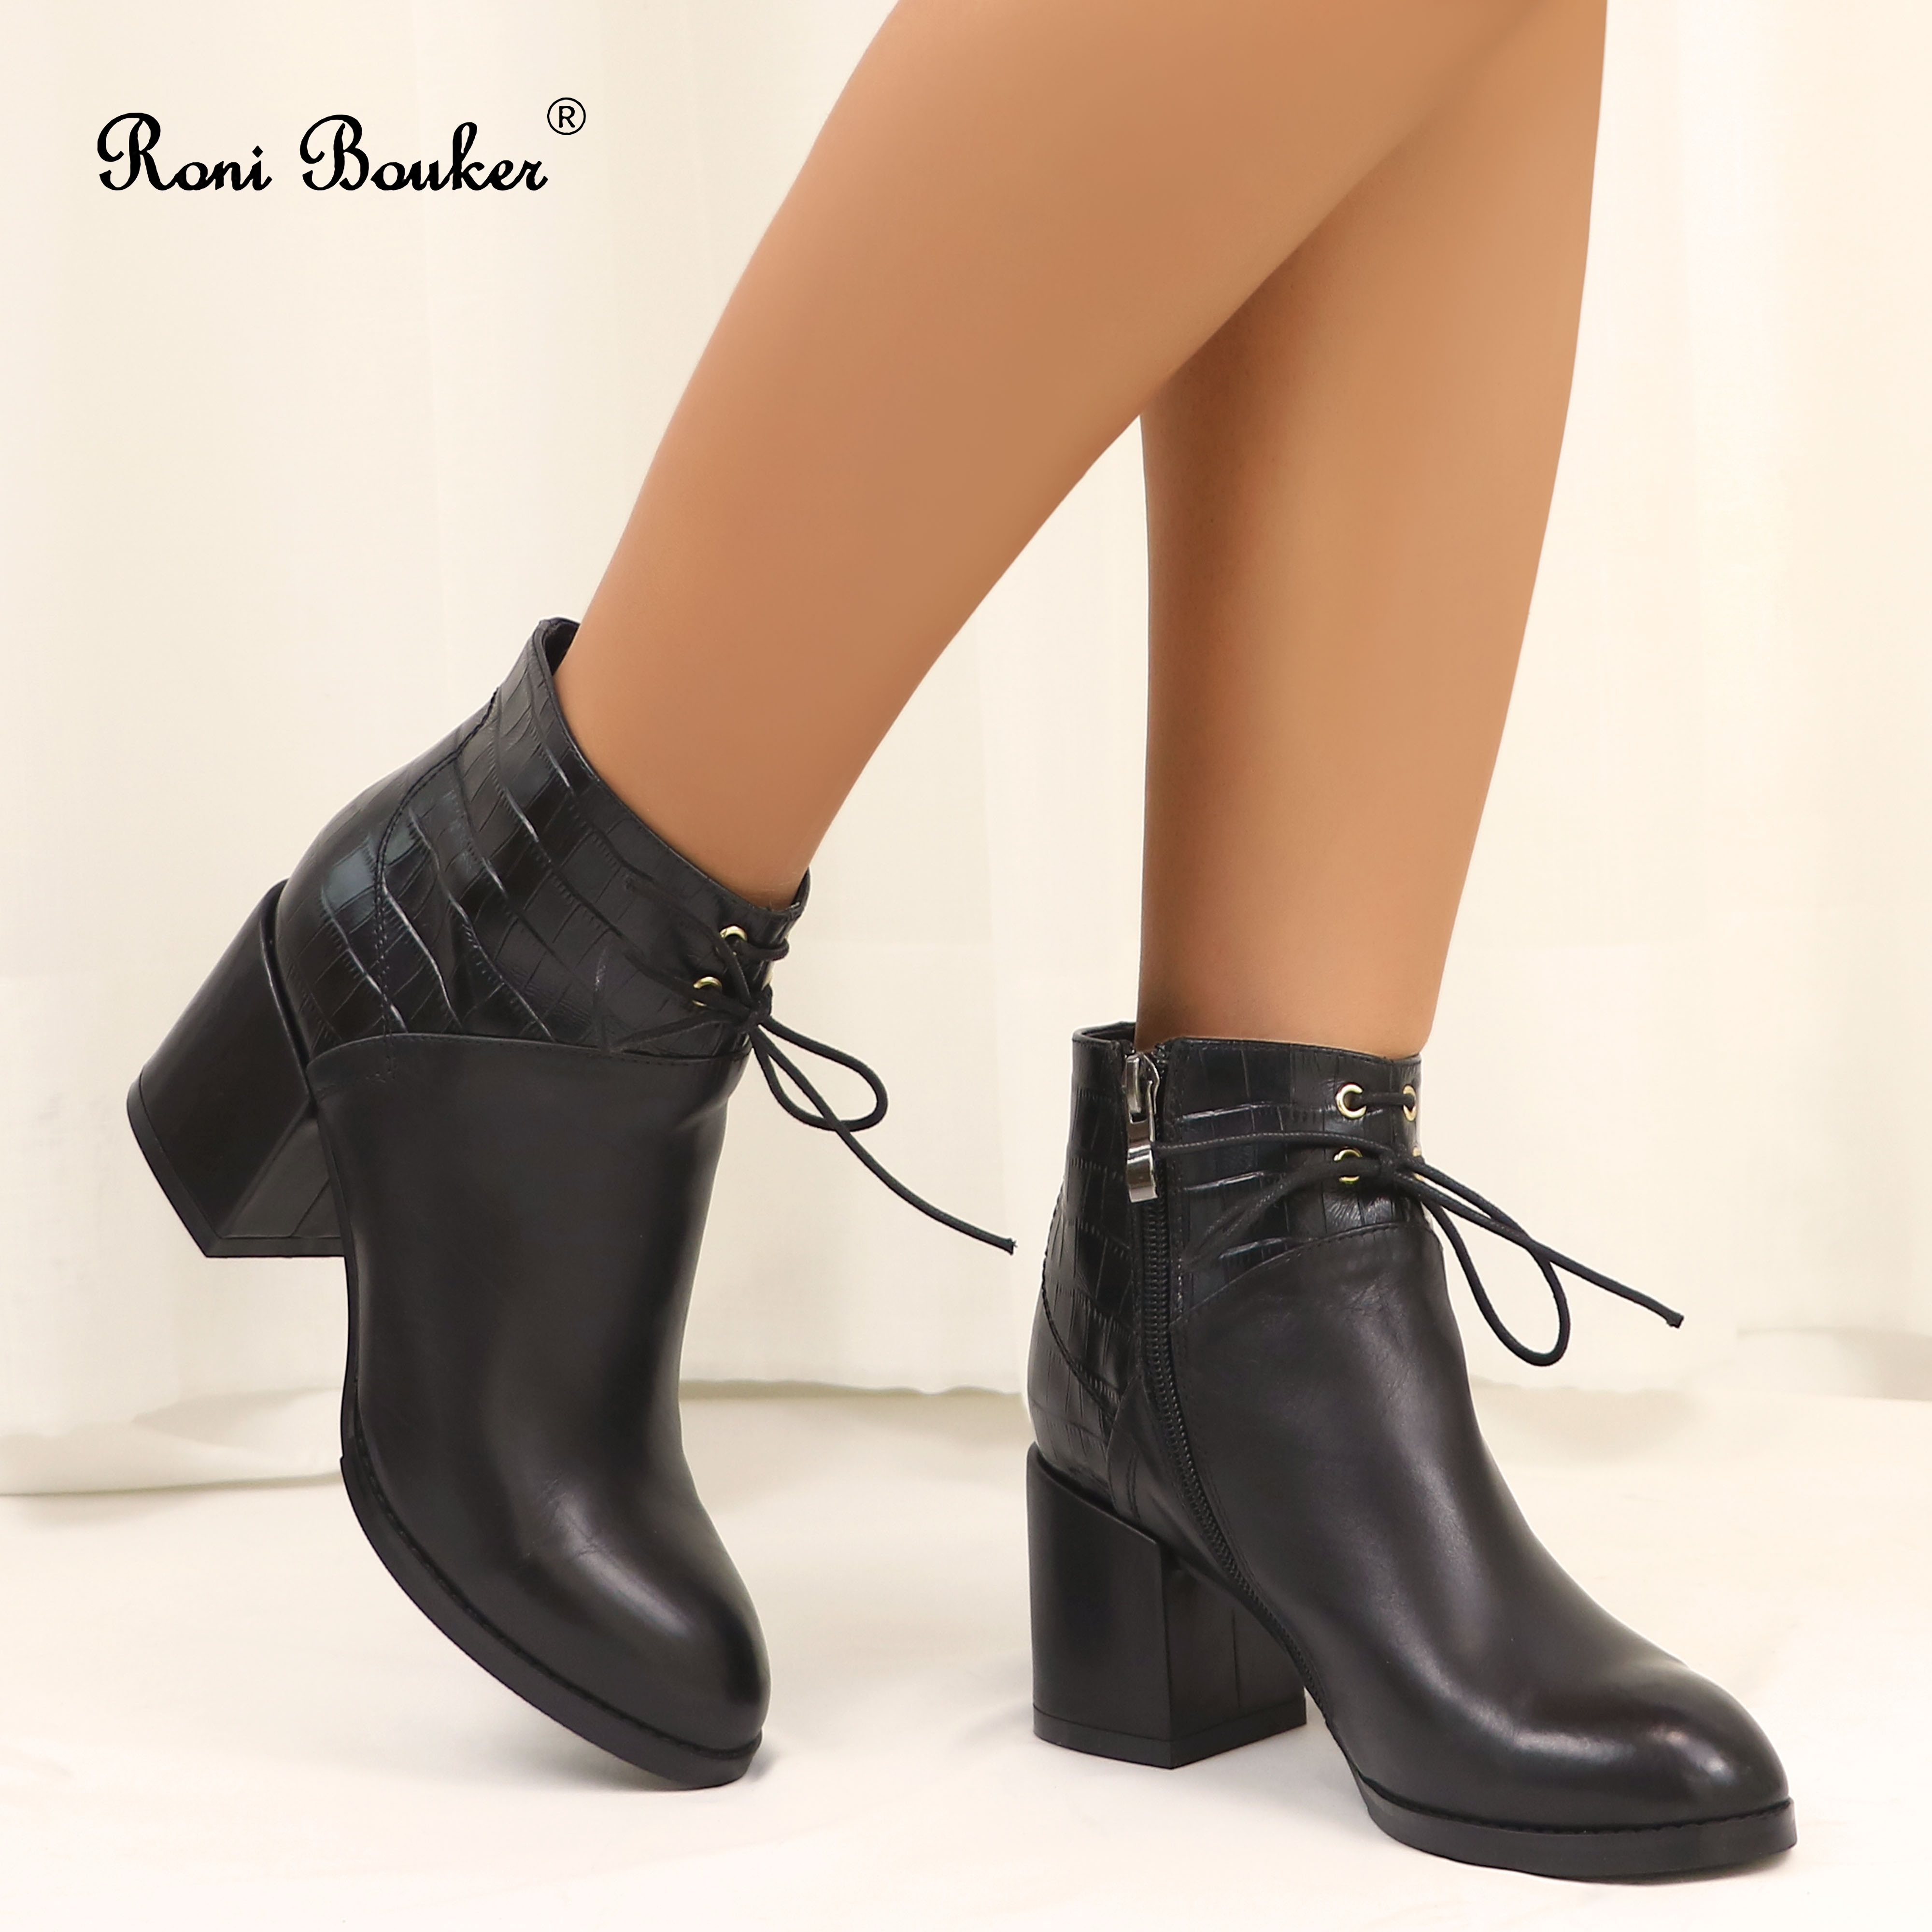 Roni Bouker Fashion Ankle Booties Comfort Round Toe Chunky Heel Ladies Shoes with Zip Black Genuine Leather Handmade Women BootsRoni Bouker Fashion Ankle Booties Comfort Round Toe Chunky Heel Ladies Shoes with Zip Black Genuine Leather Handmade Women Boots